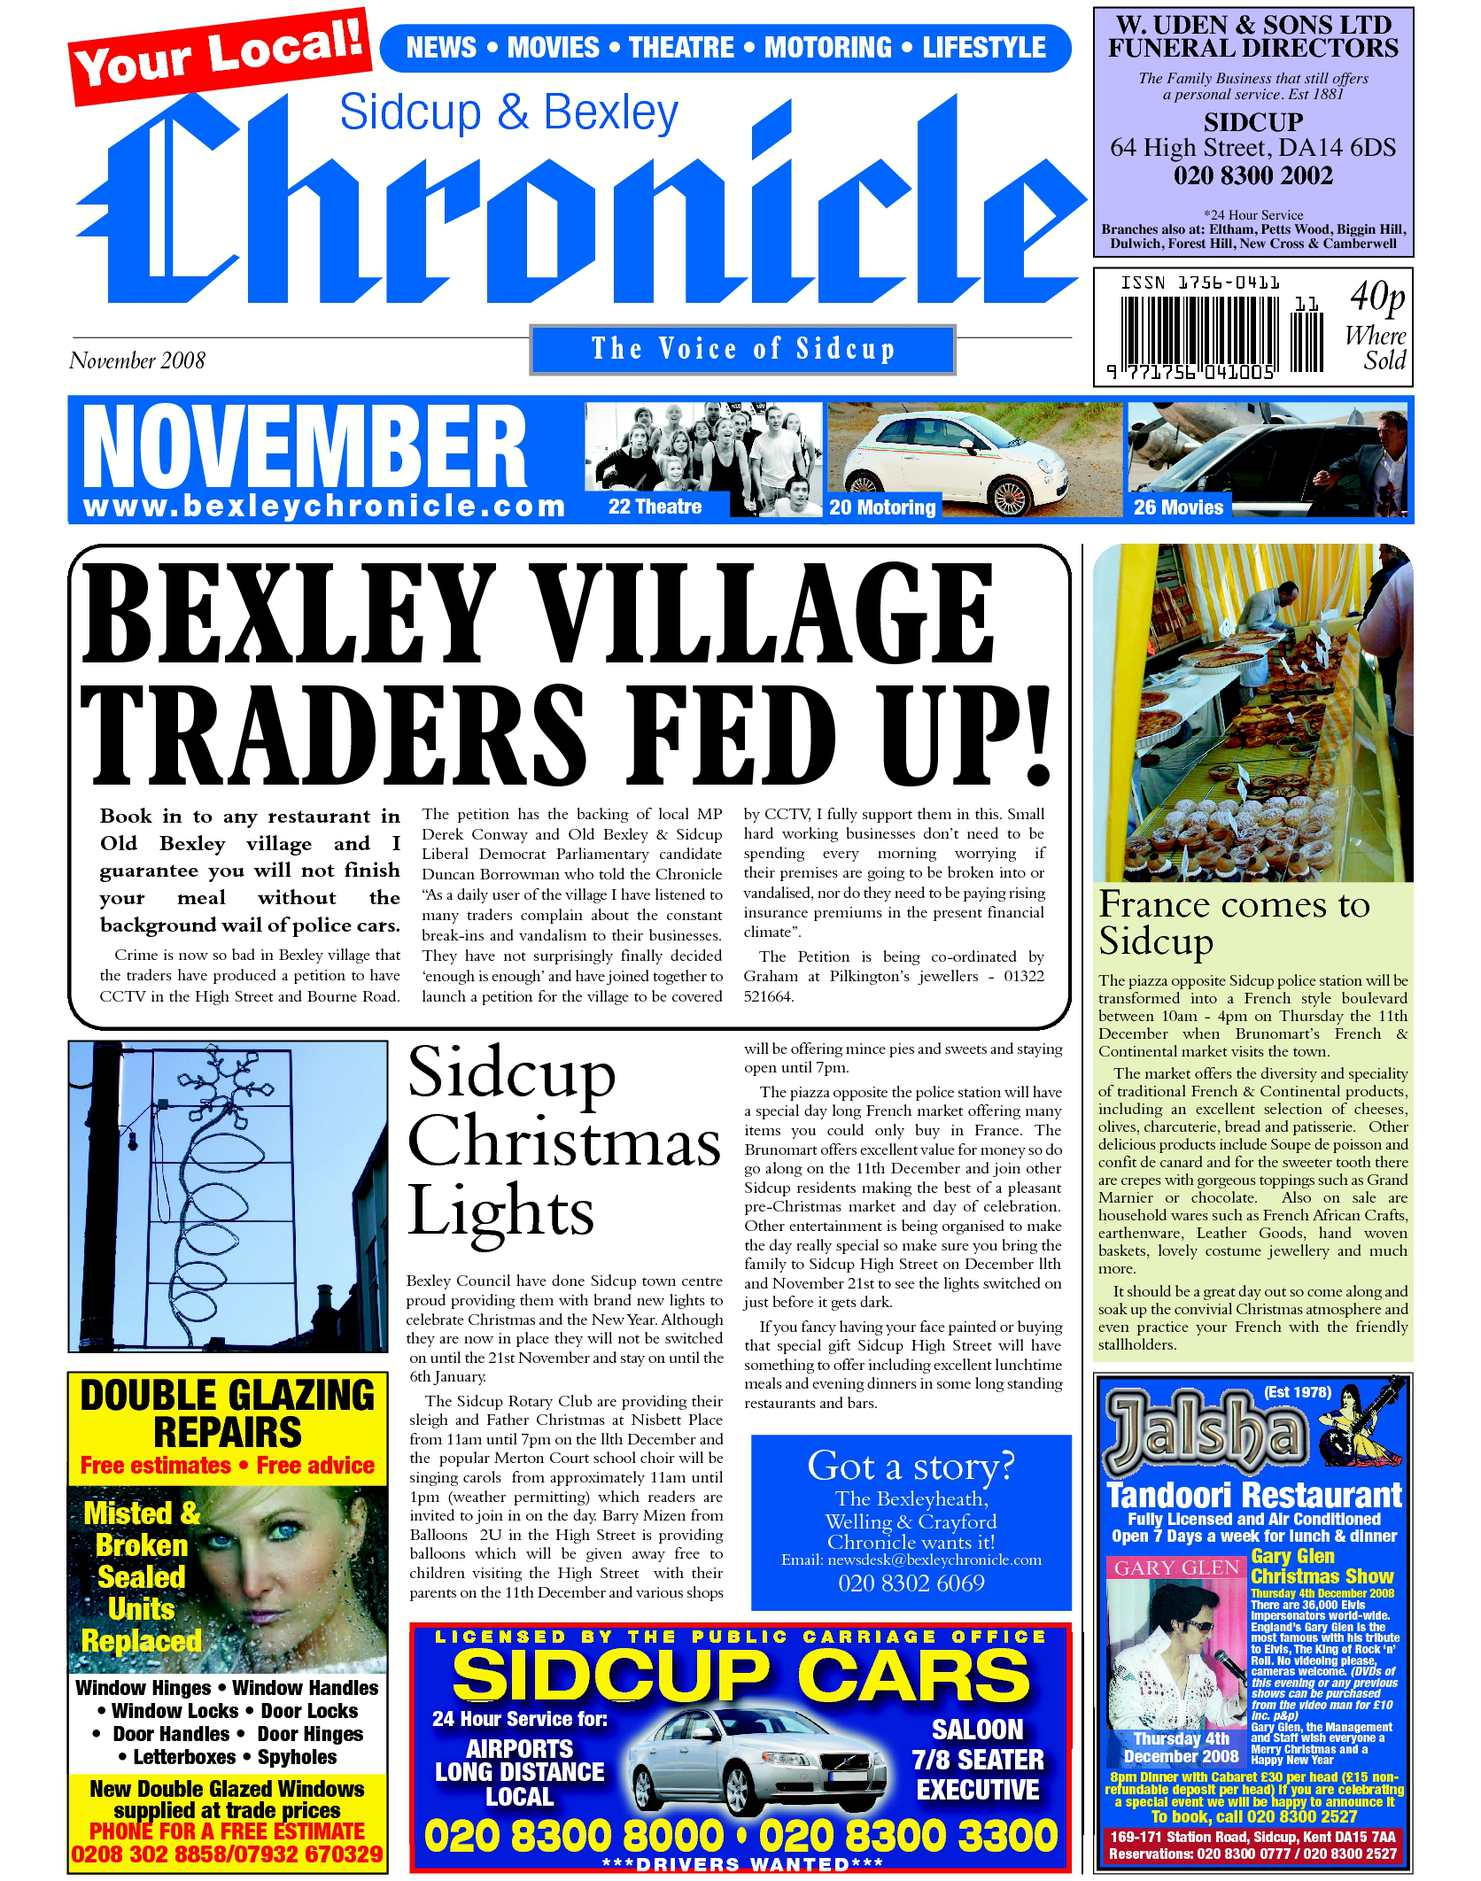 Calamo The Sidcup Bexley Chronicle November 2008 Stiker Cctv Anti Dept Colector New